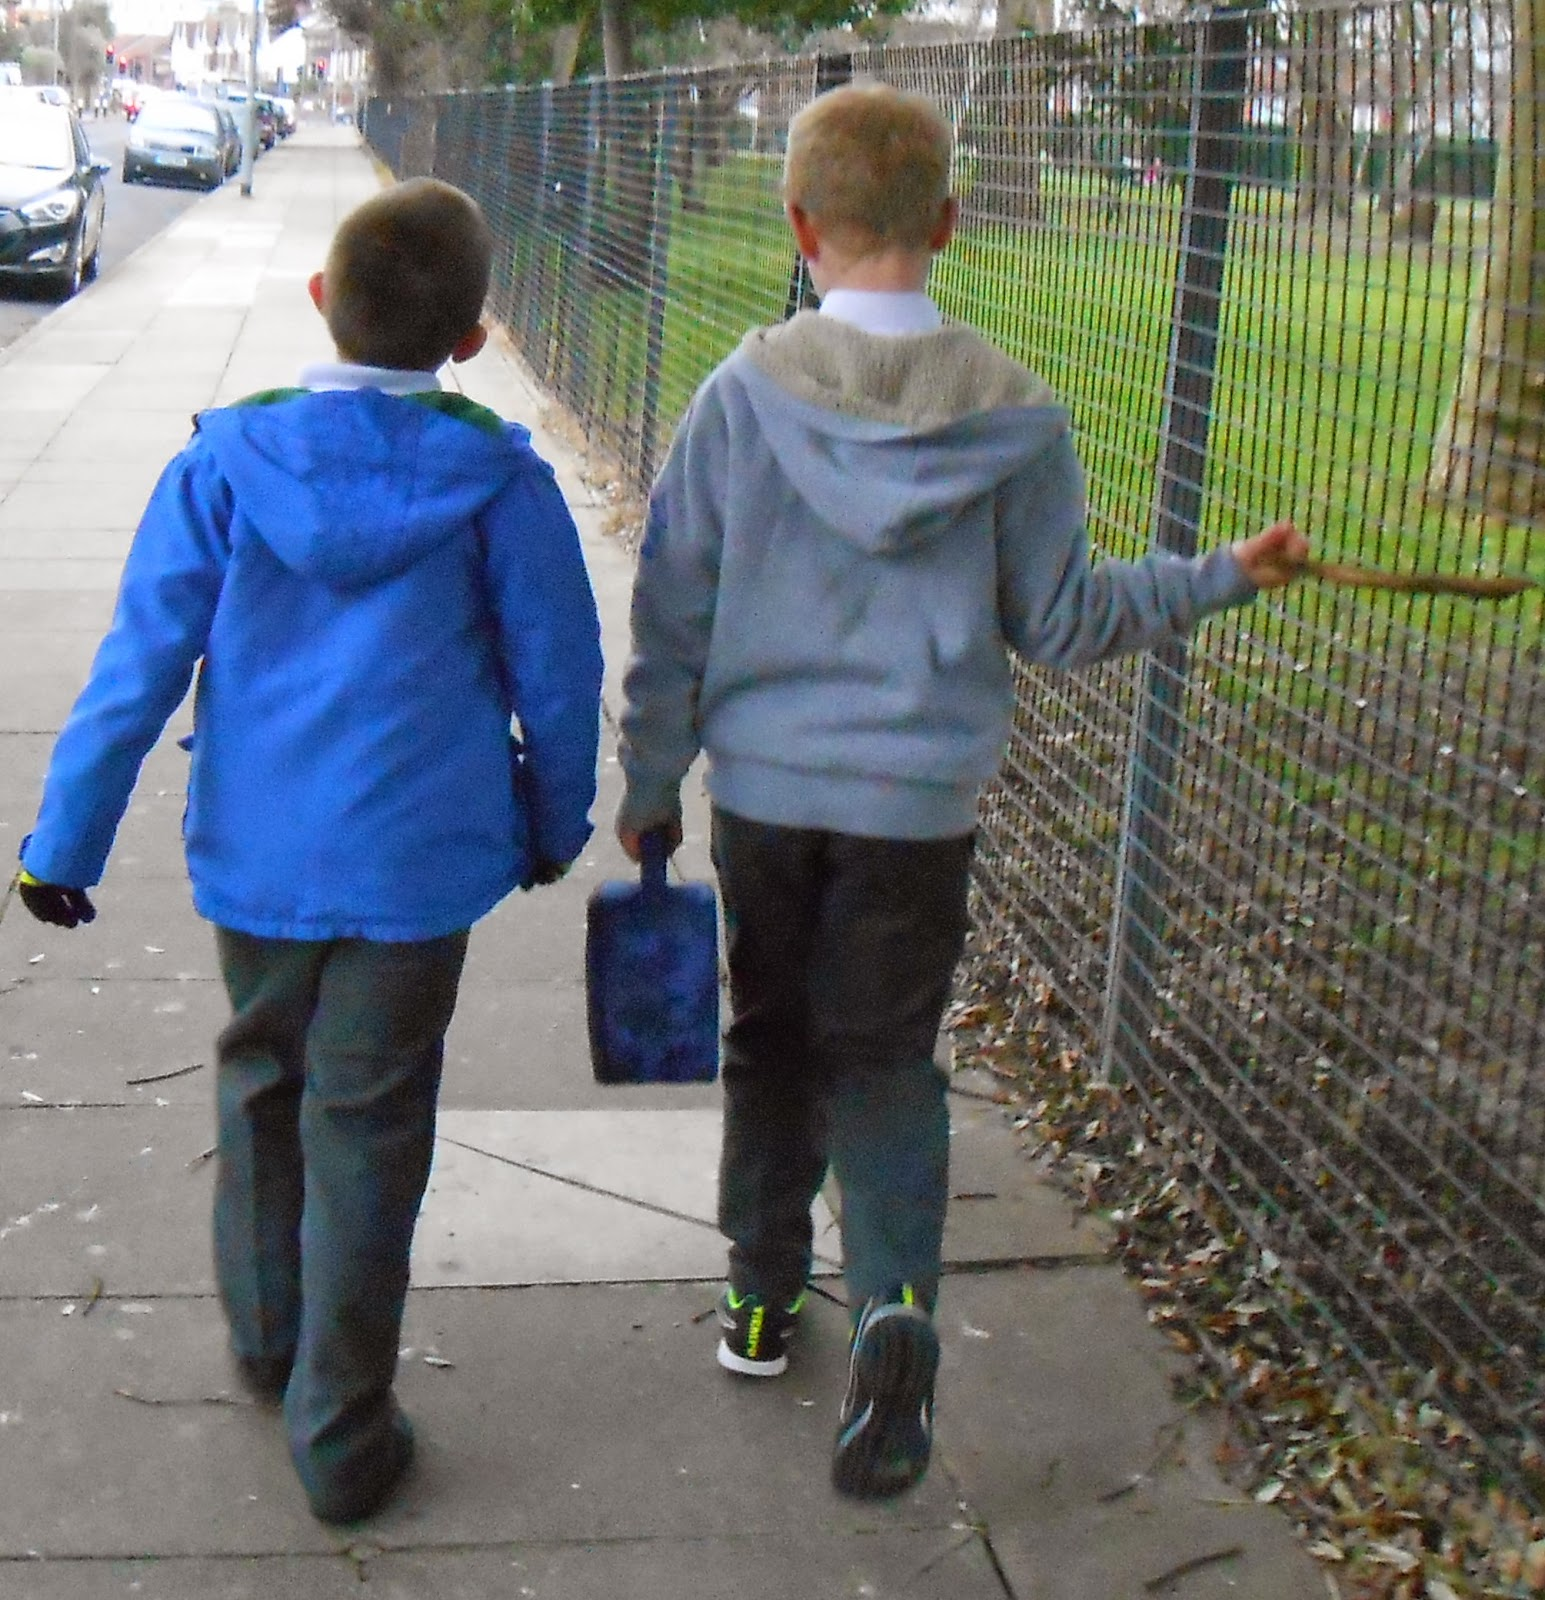 schoolkids jabbering aimlessly about crap